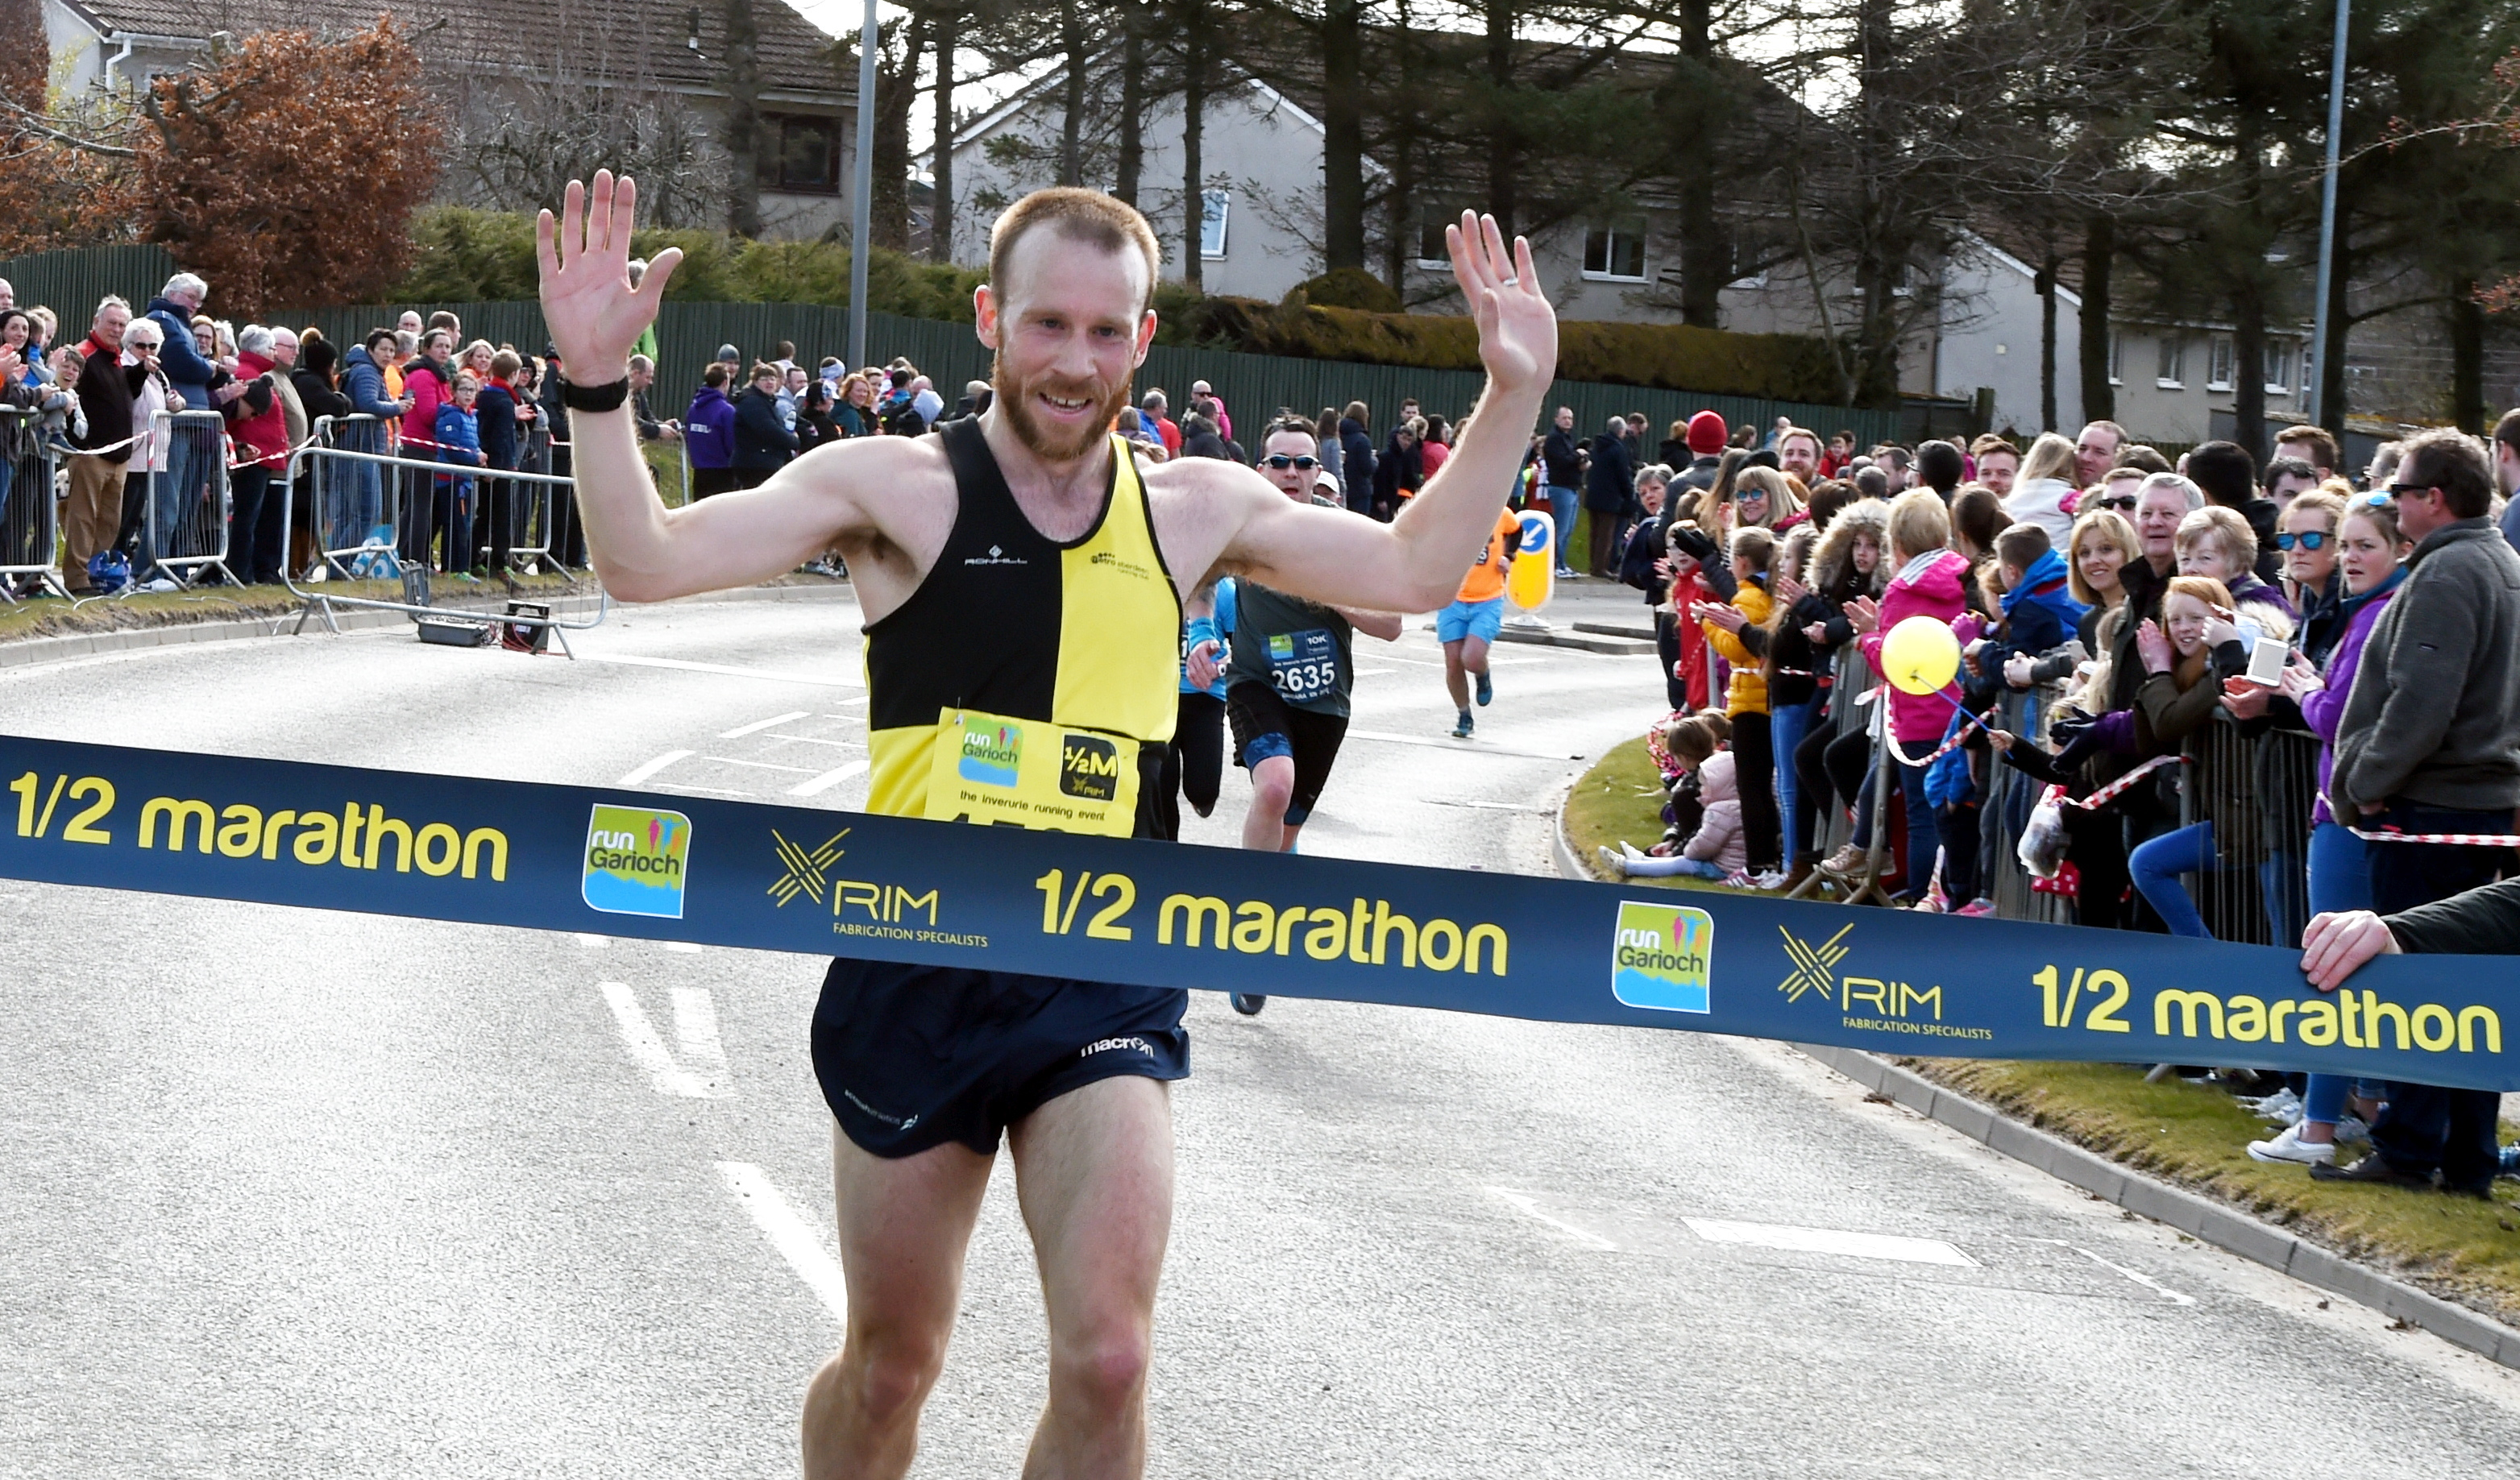 Tartan Running Shorts is the creation of GB International runner Kyle Greig (pictured) and Tom Brian